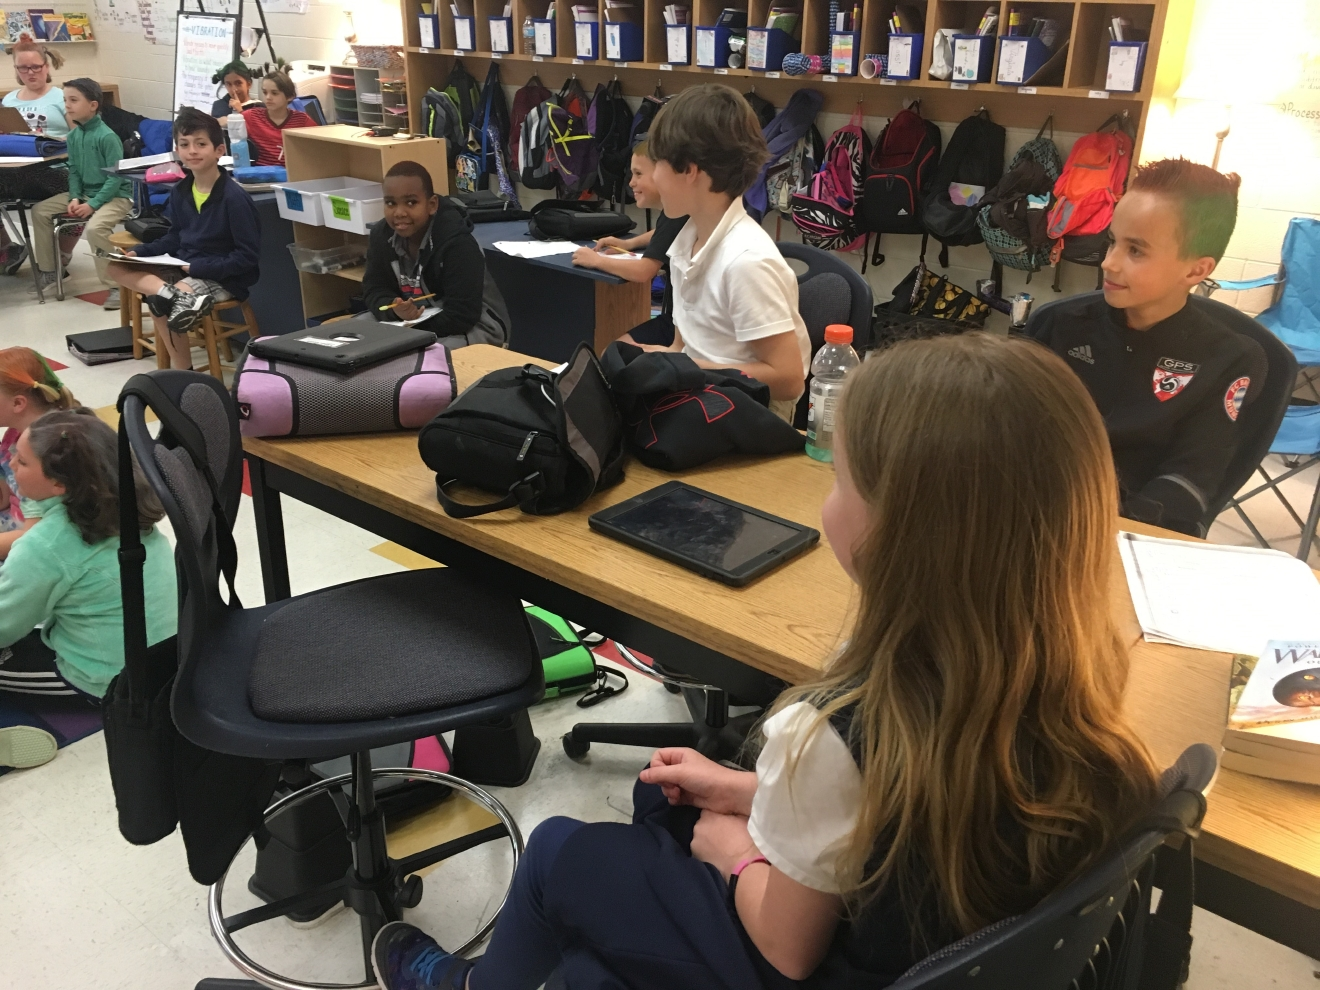 Matejewski started flexible seating at the start of the school year, and said she has already seen a huge decrease in behavioral issues and an increase in focus. (Credit: Josie Gregory)